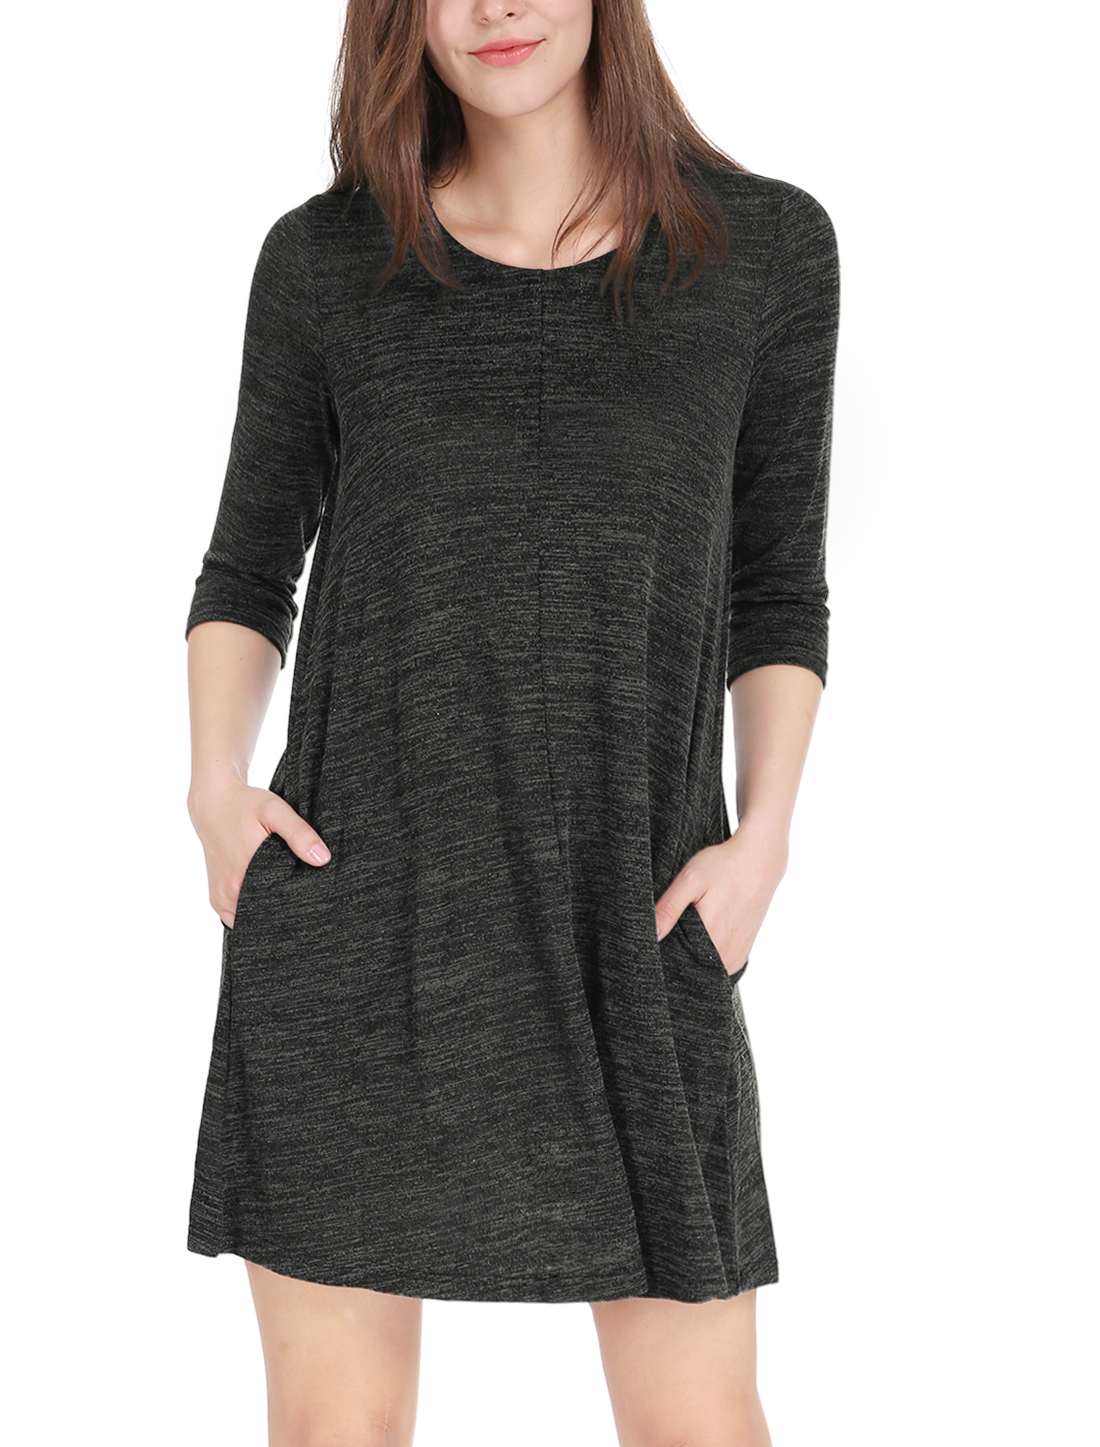 Women 3/4 Sleeves Round Neck Above Knee Loose T-shirt Dress Black L